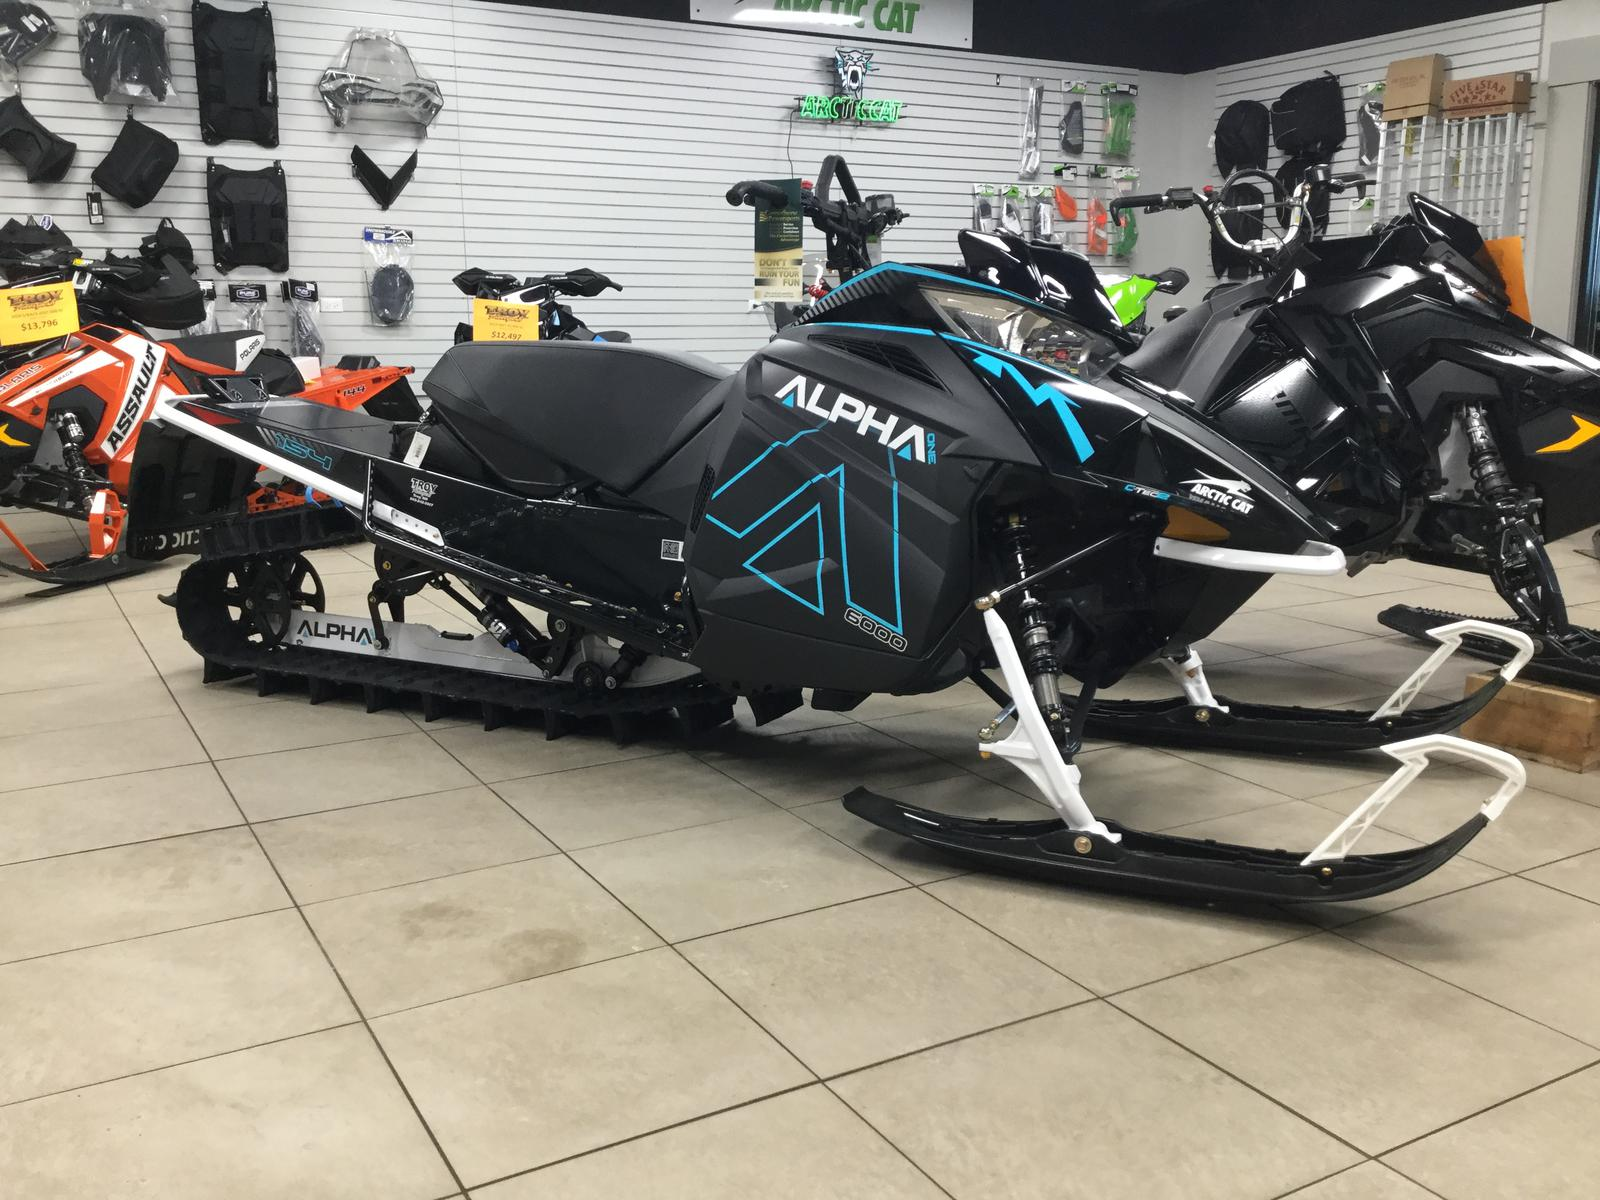 Inventory Troy Powersports Troy, NH (603) 242-3397